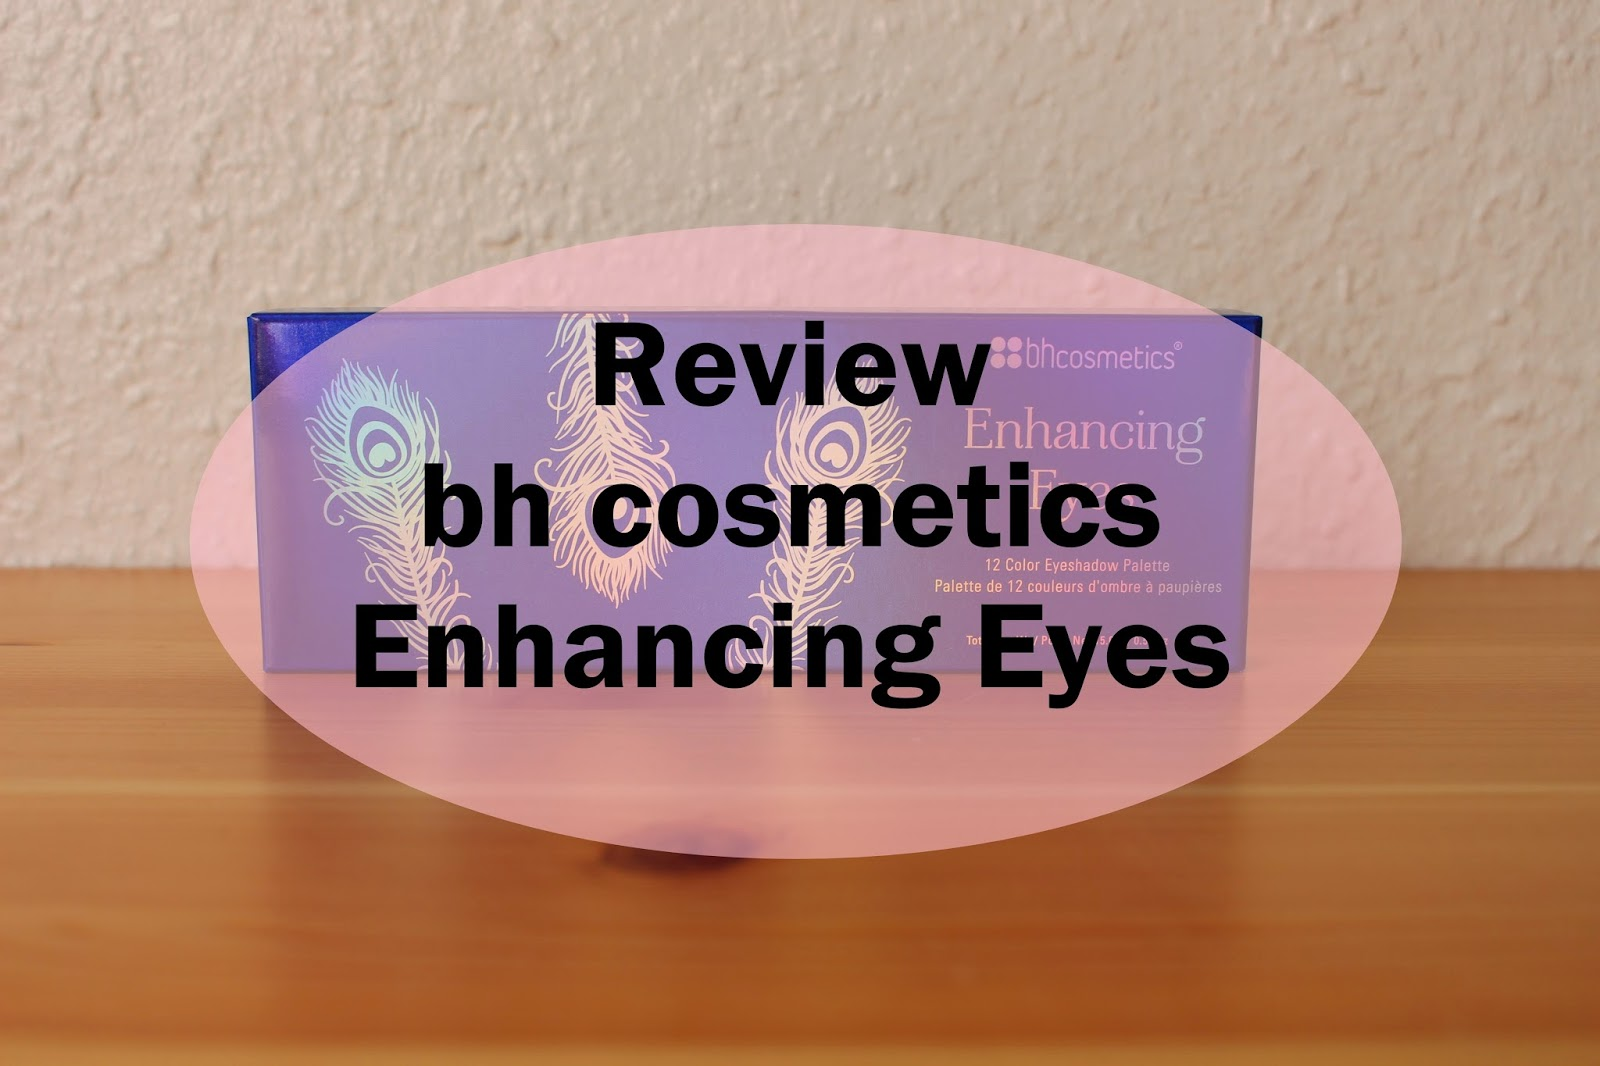 bh cosmetics enhancing eyes